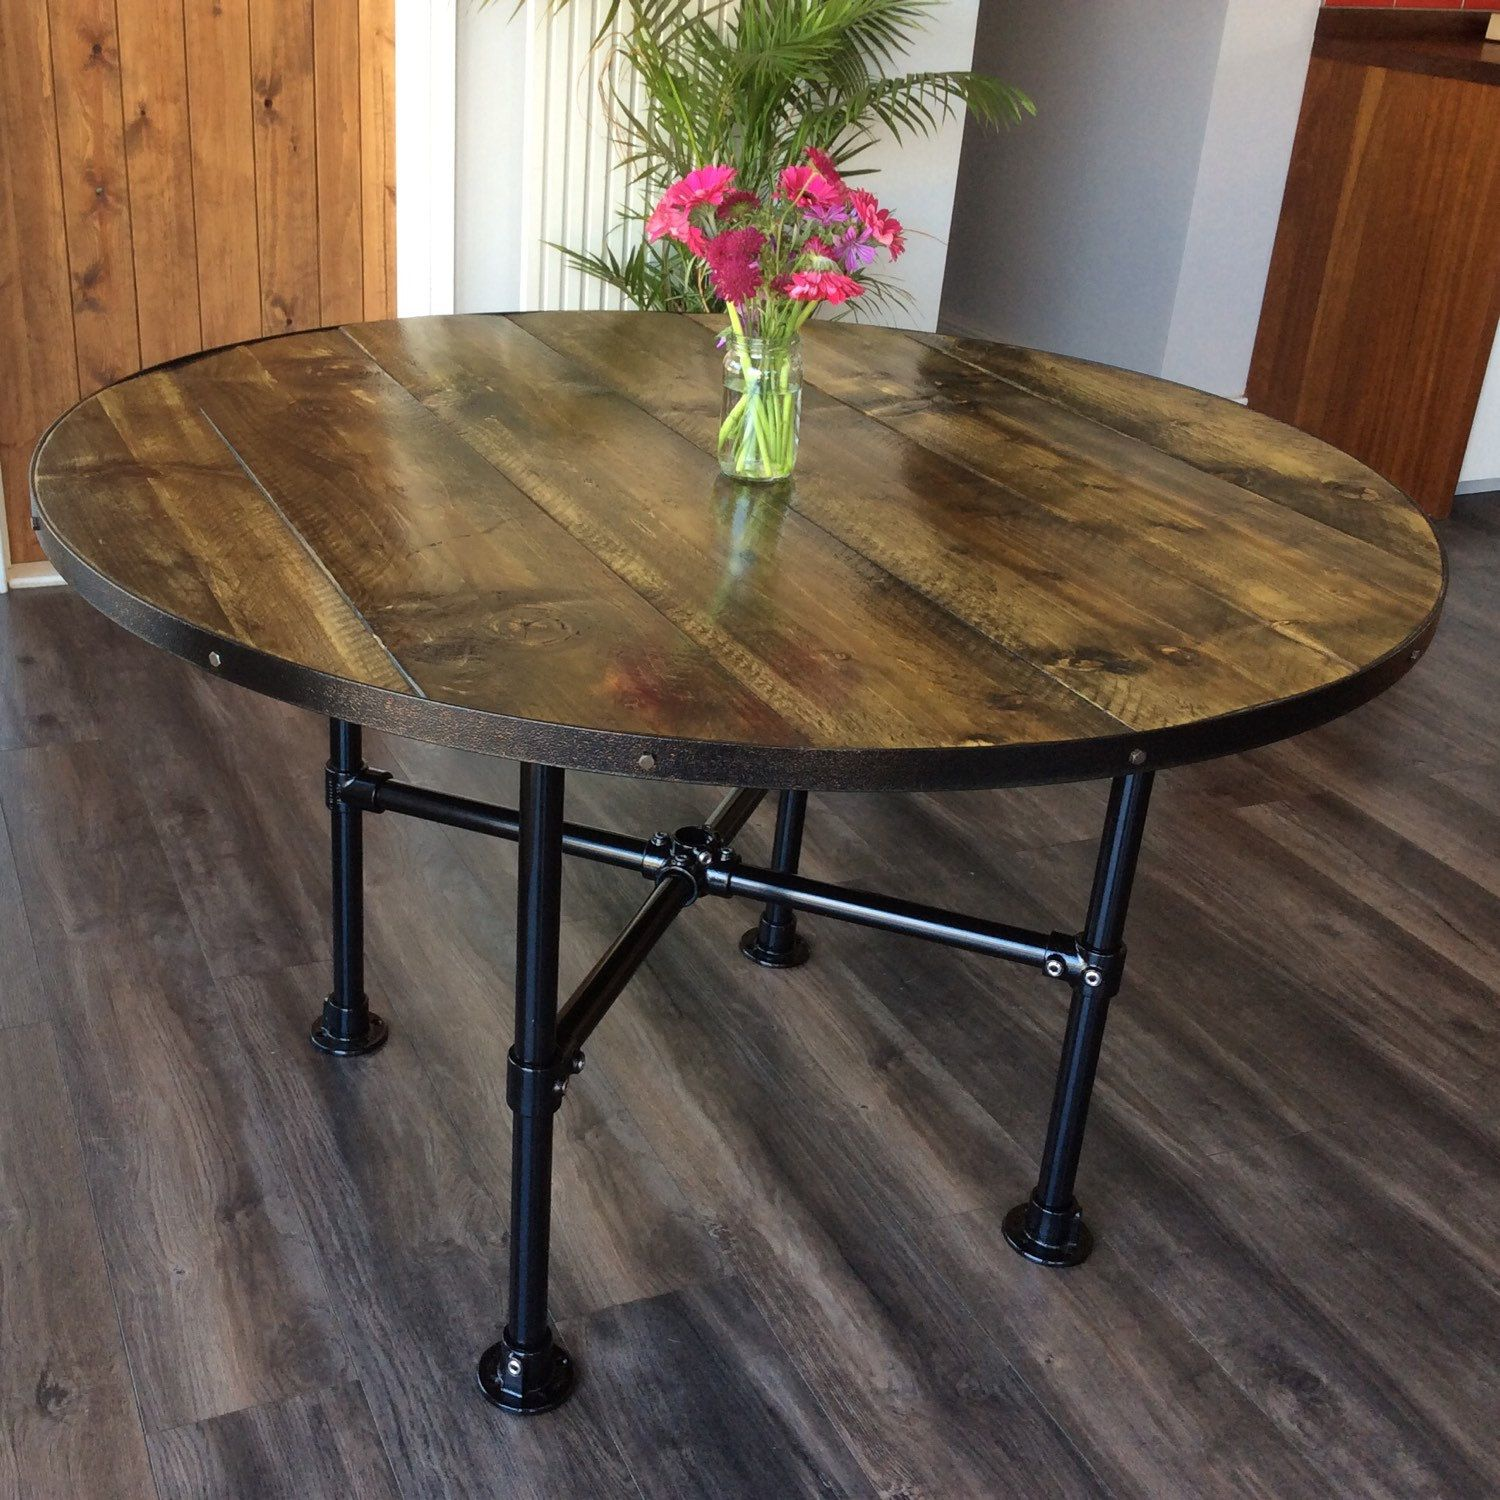 Barrel Top Table With Black Frame In An Aged Oak